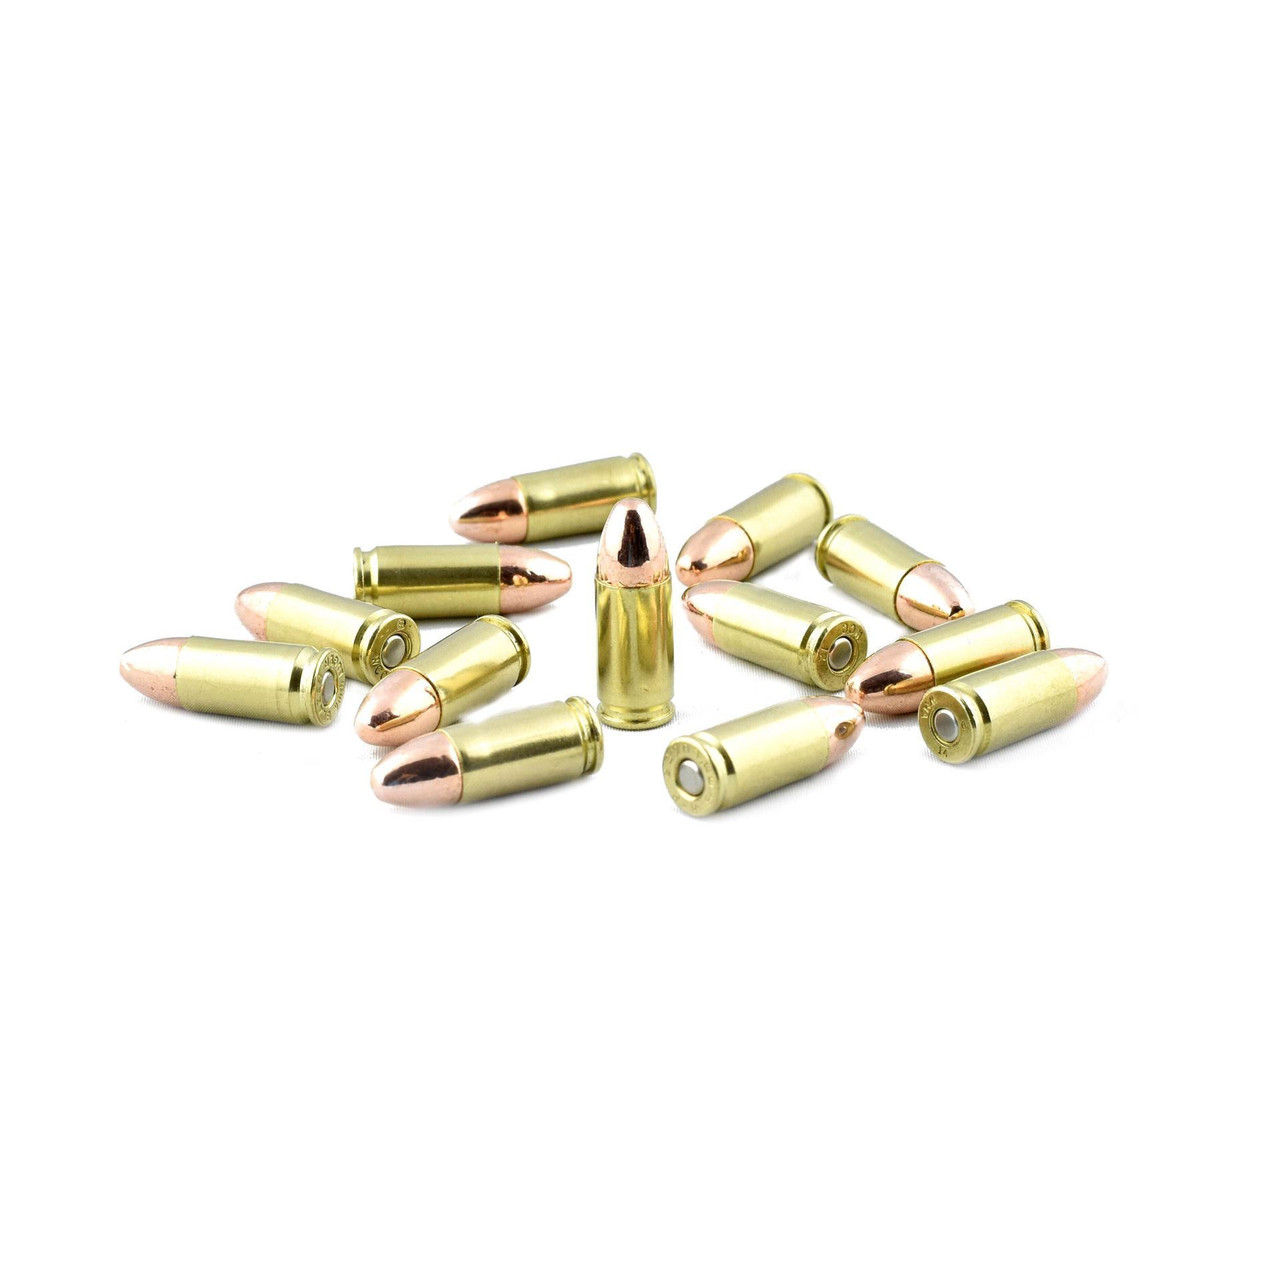 9mm ammunition , 9mm , bulk 9mm ammo , range ammo , 9mm bulk ammunition